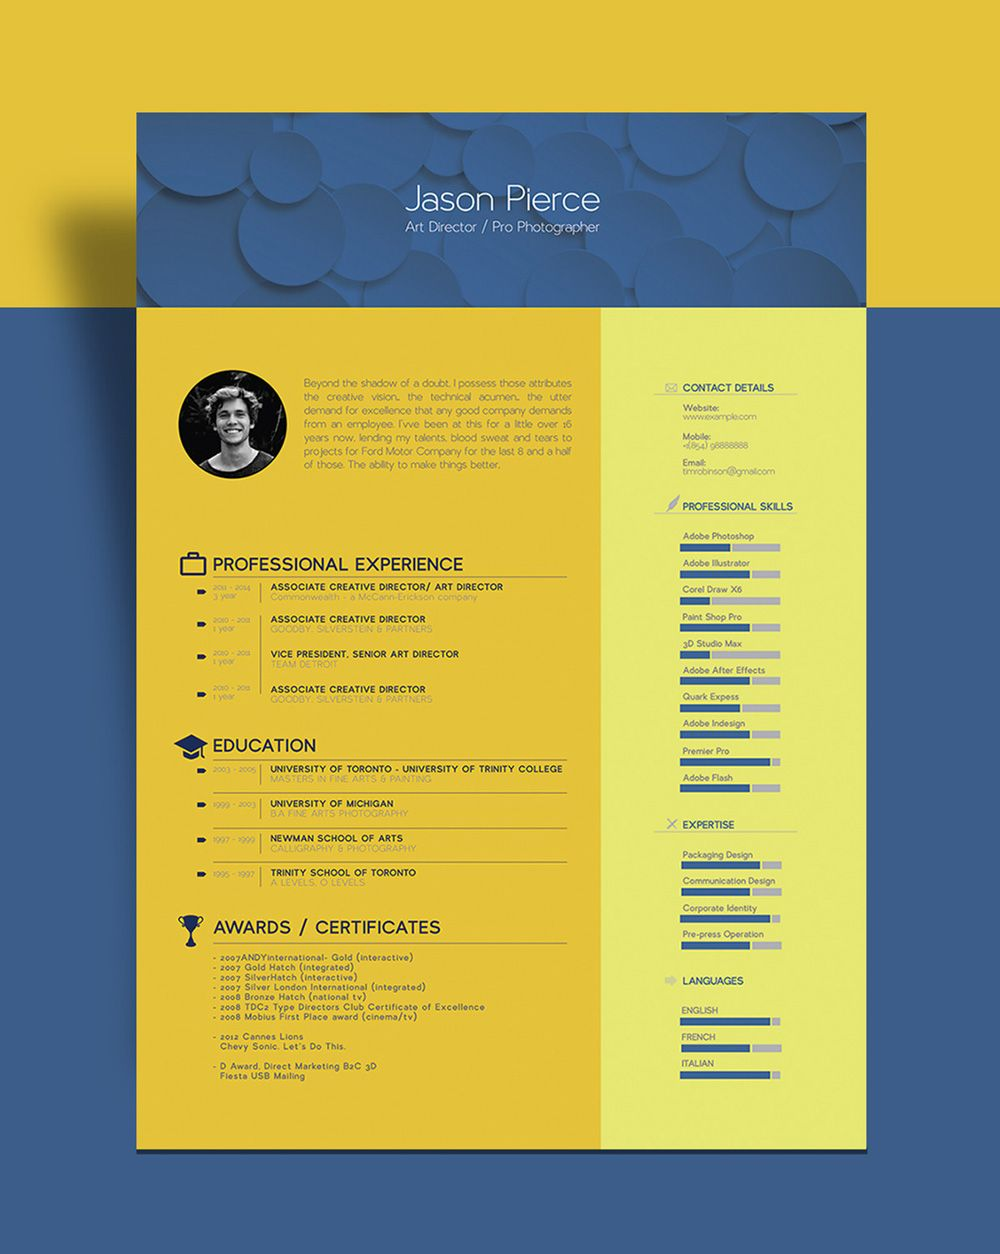 Free Beautiful Resume CV Template For Graphic Designer Art Director Freebies A4 AI Design Resource Vector